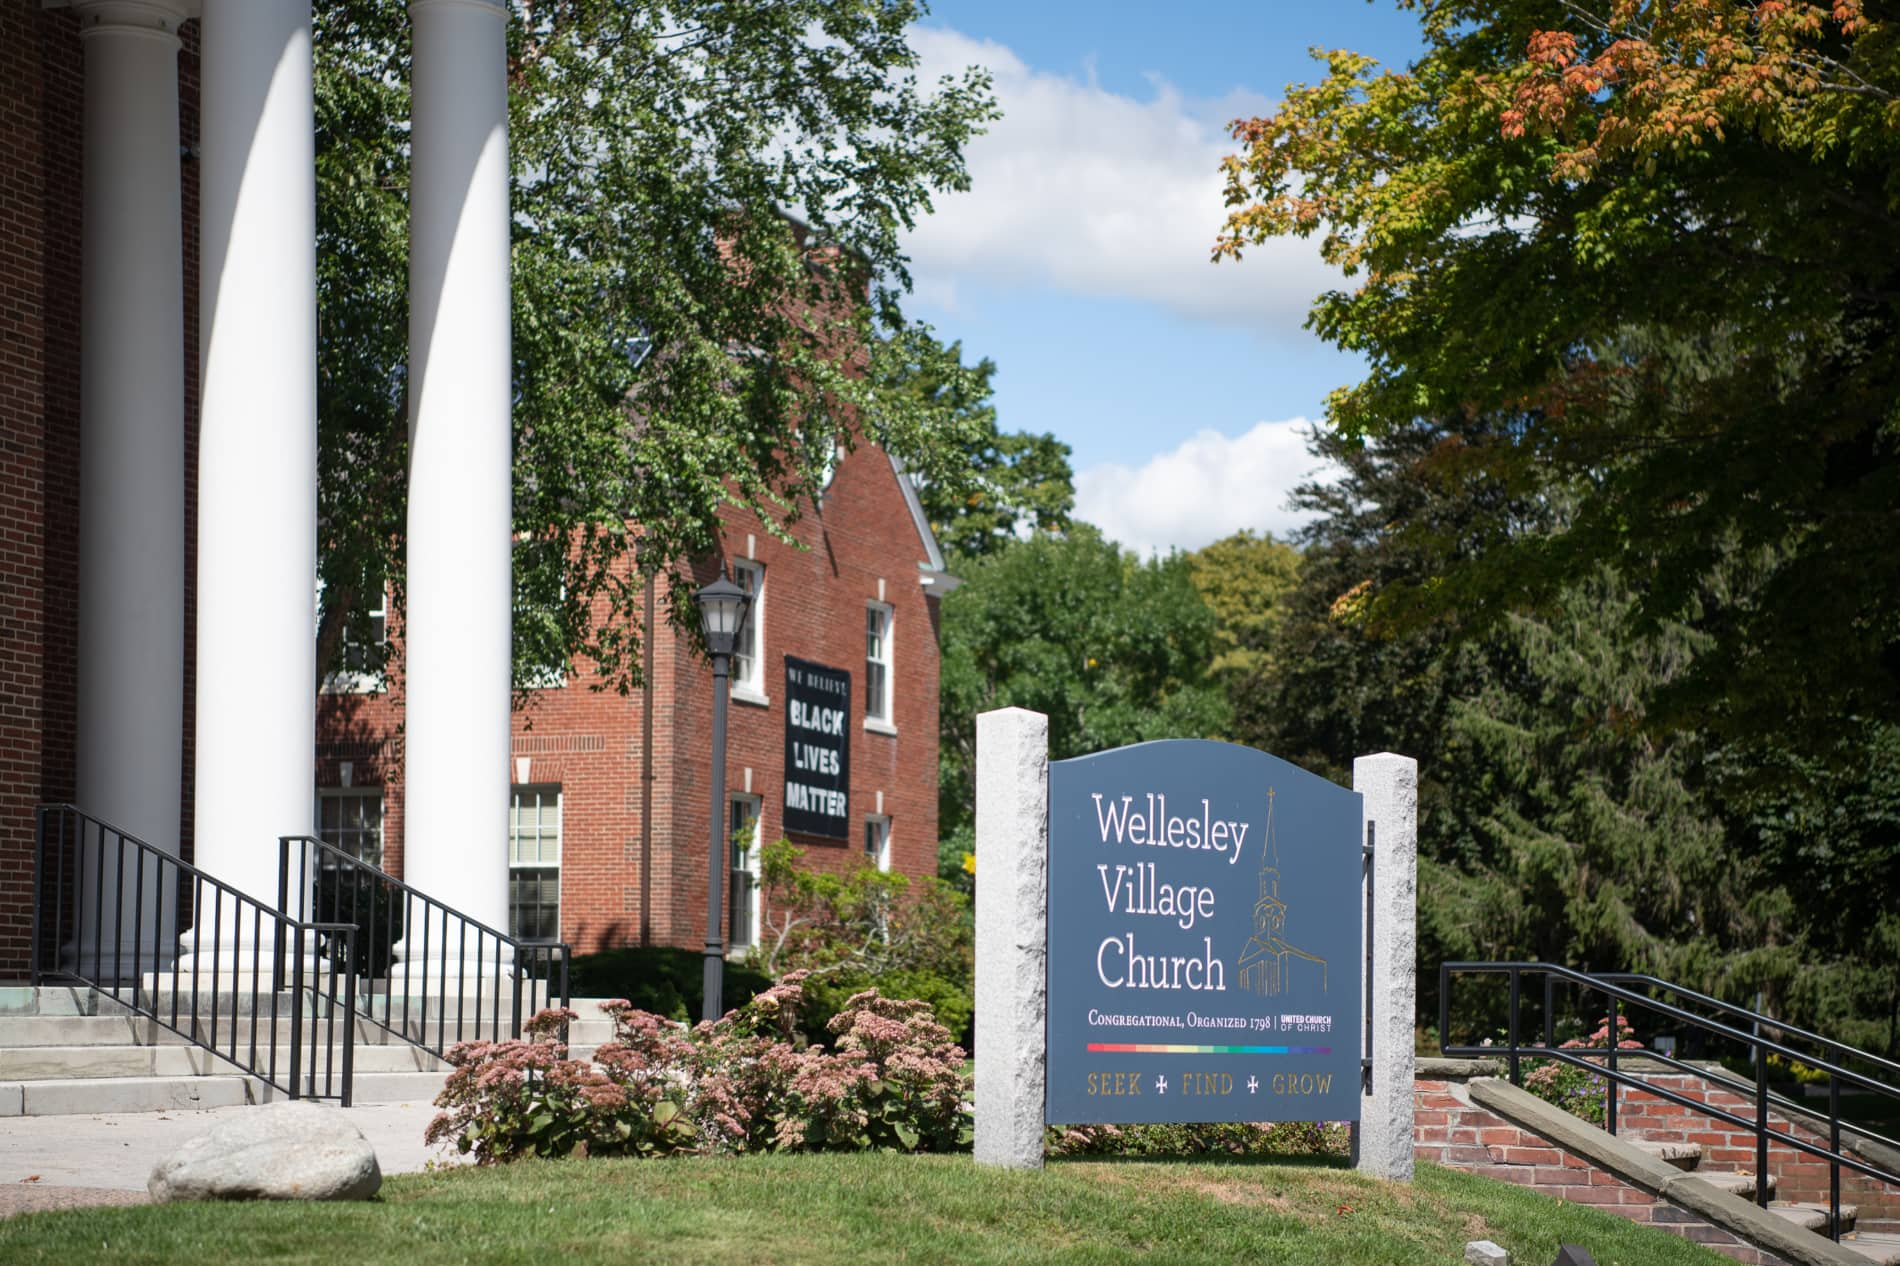 The exterior sign of the Wellesley Village Church with a Black Lives Matters banner in the background